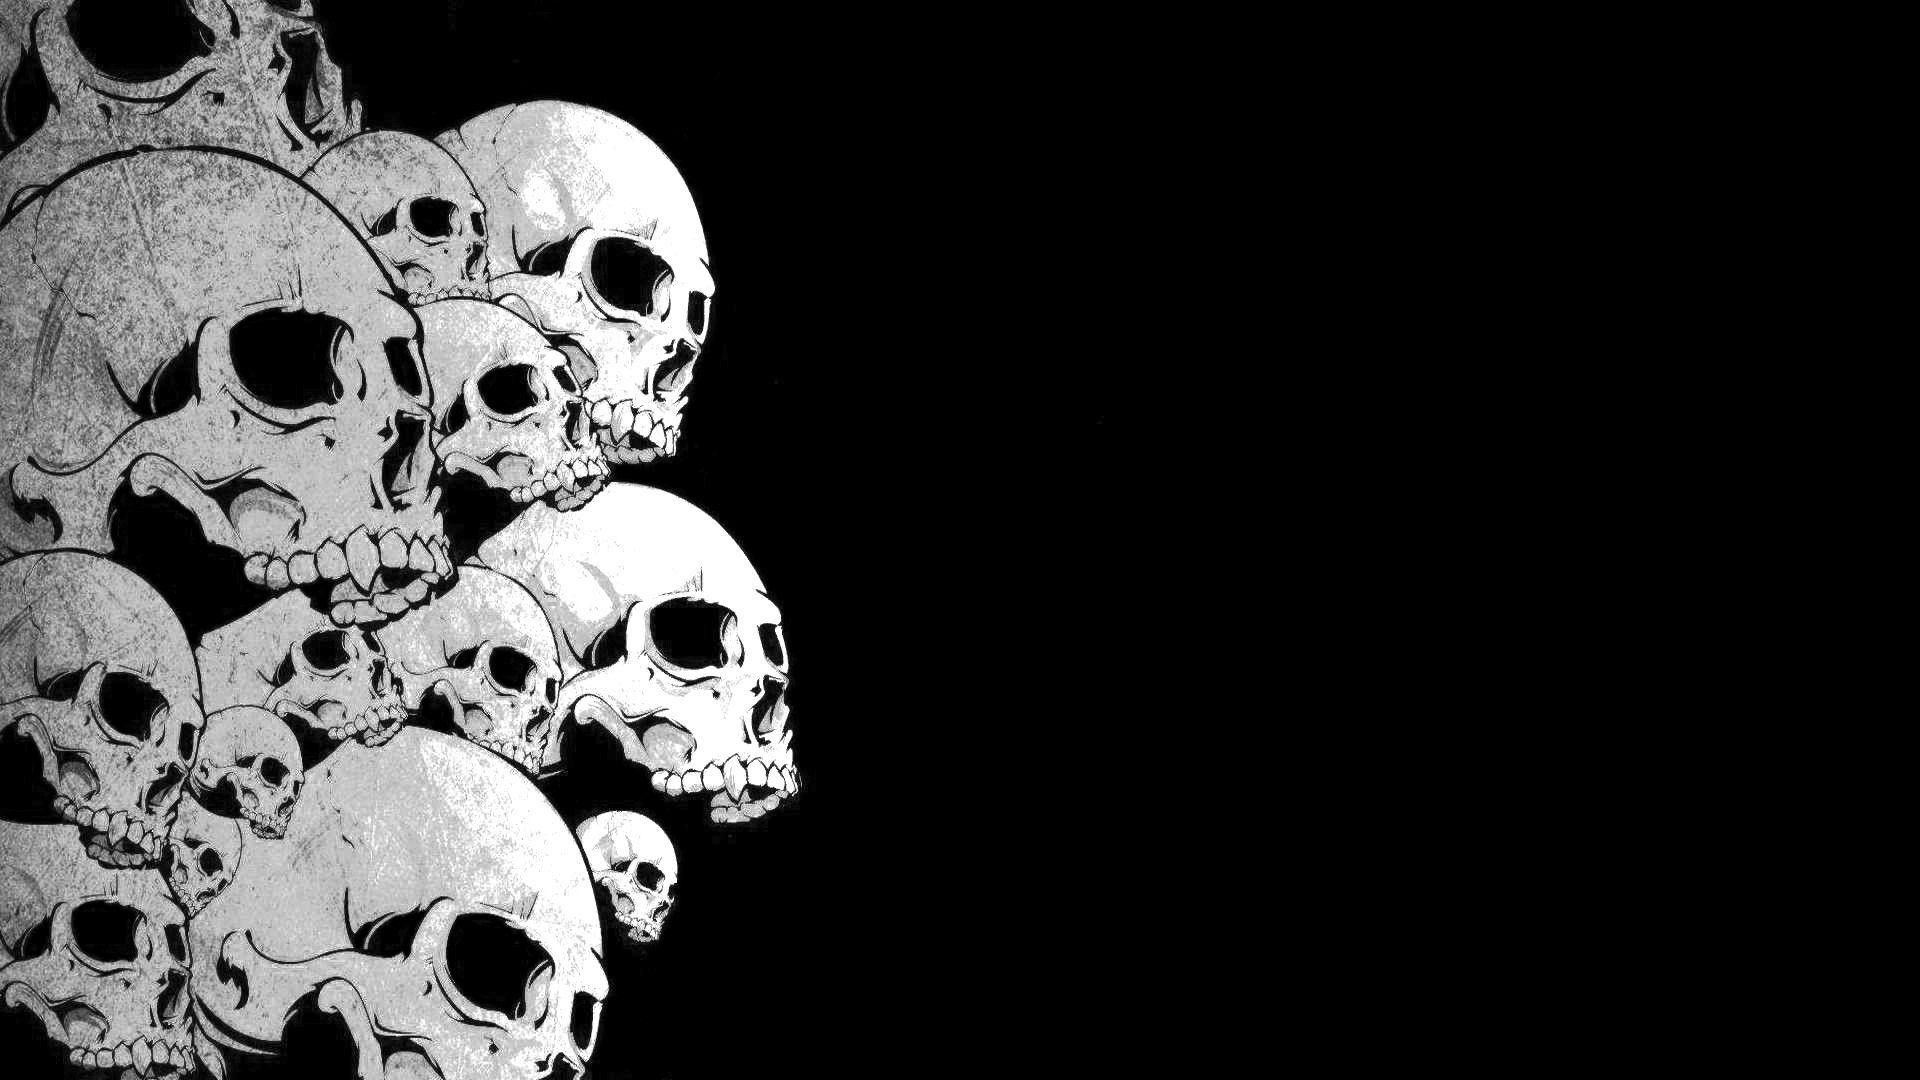 Black And White Skull Wallpapers Top Free Black And White Skull Backgrounds Wallpaperaccess